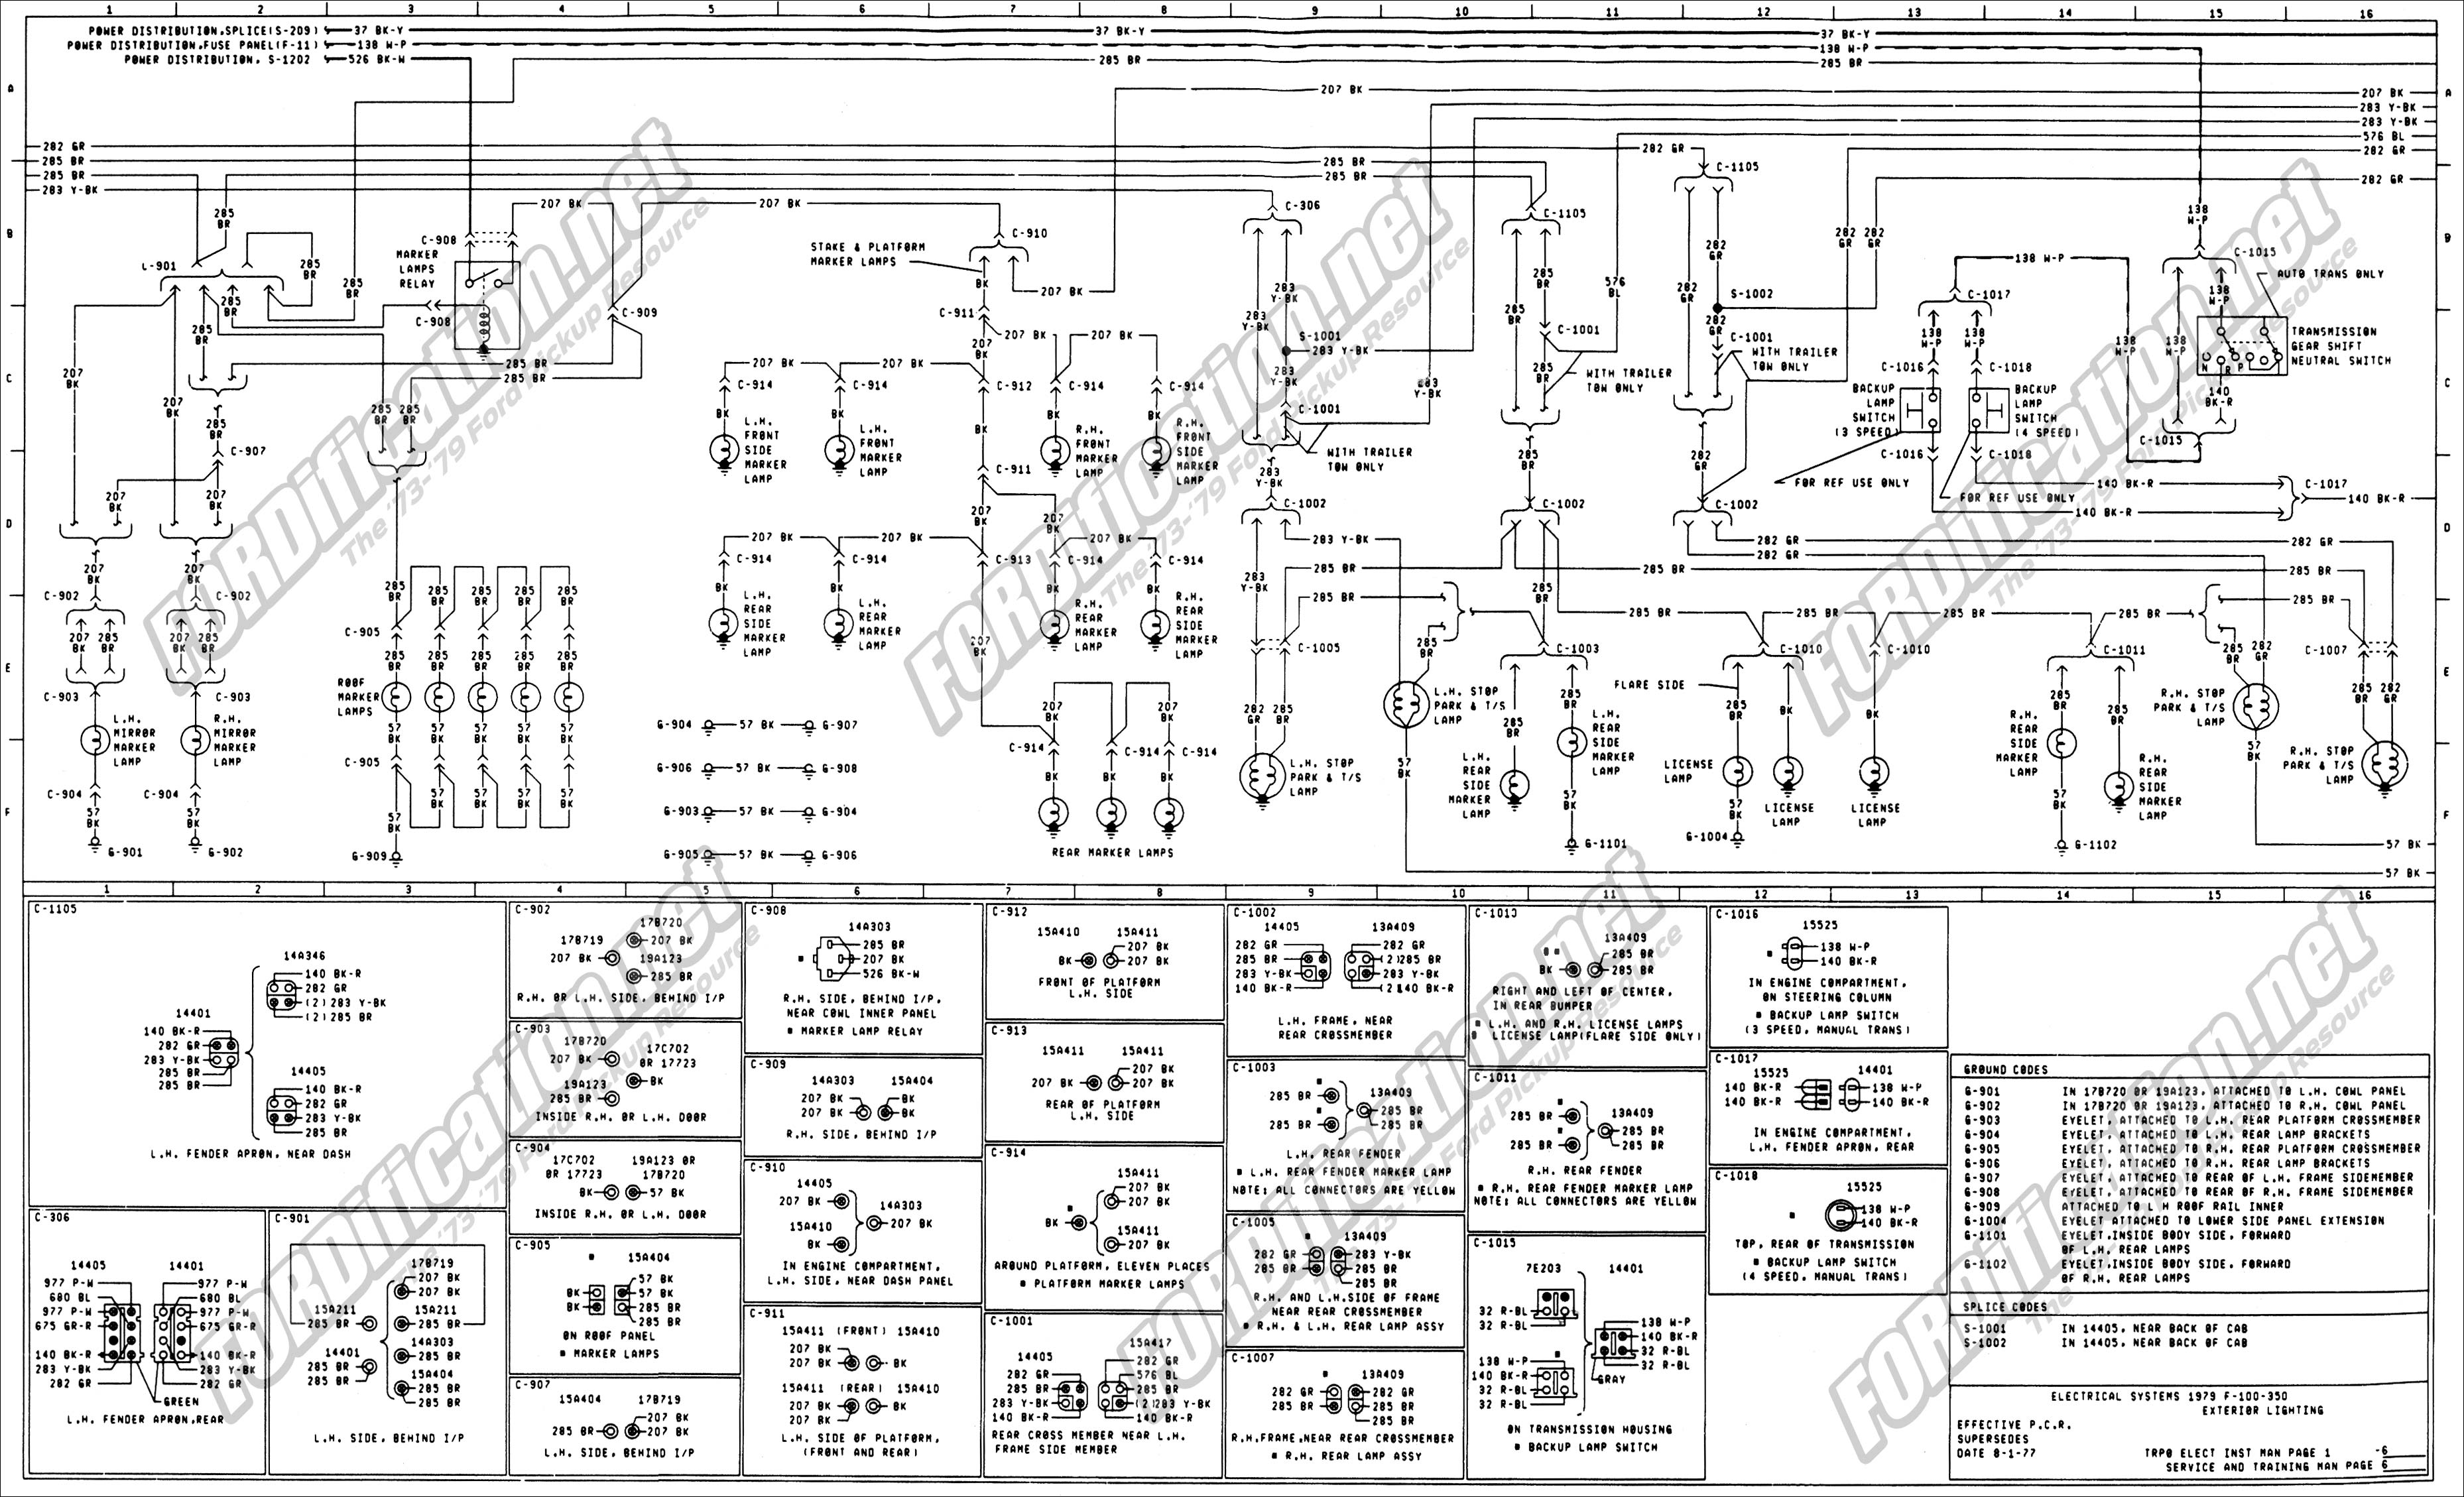 2016 ford f150 speaker wiring diagram ge stove top 1973 1979 truck diagrams schematics fordification net